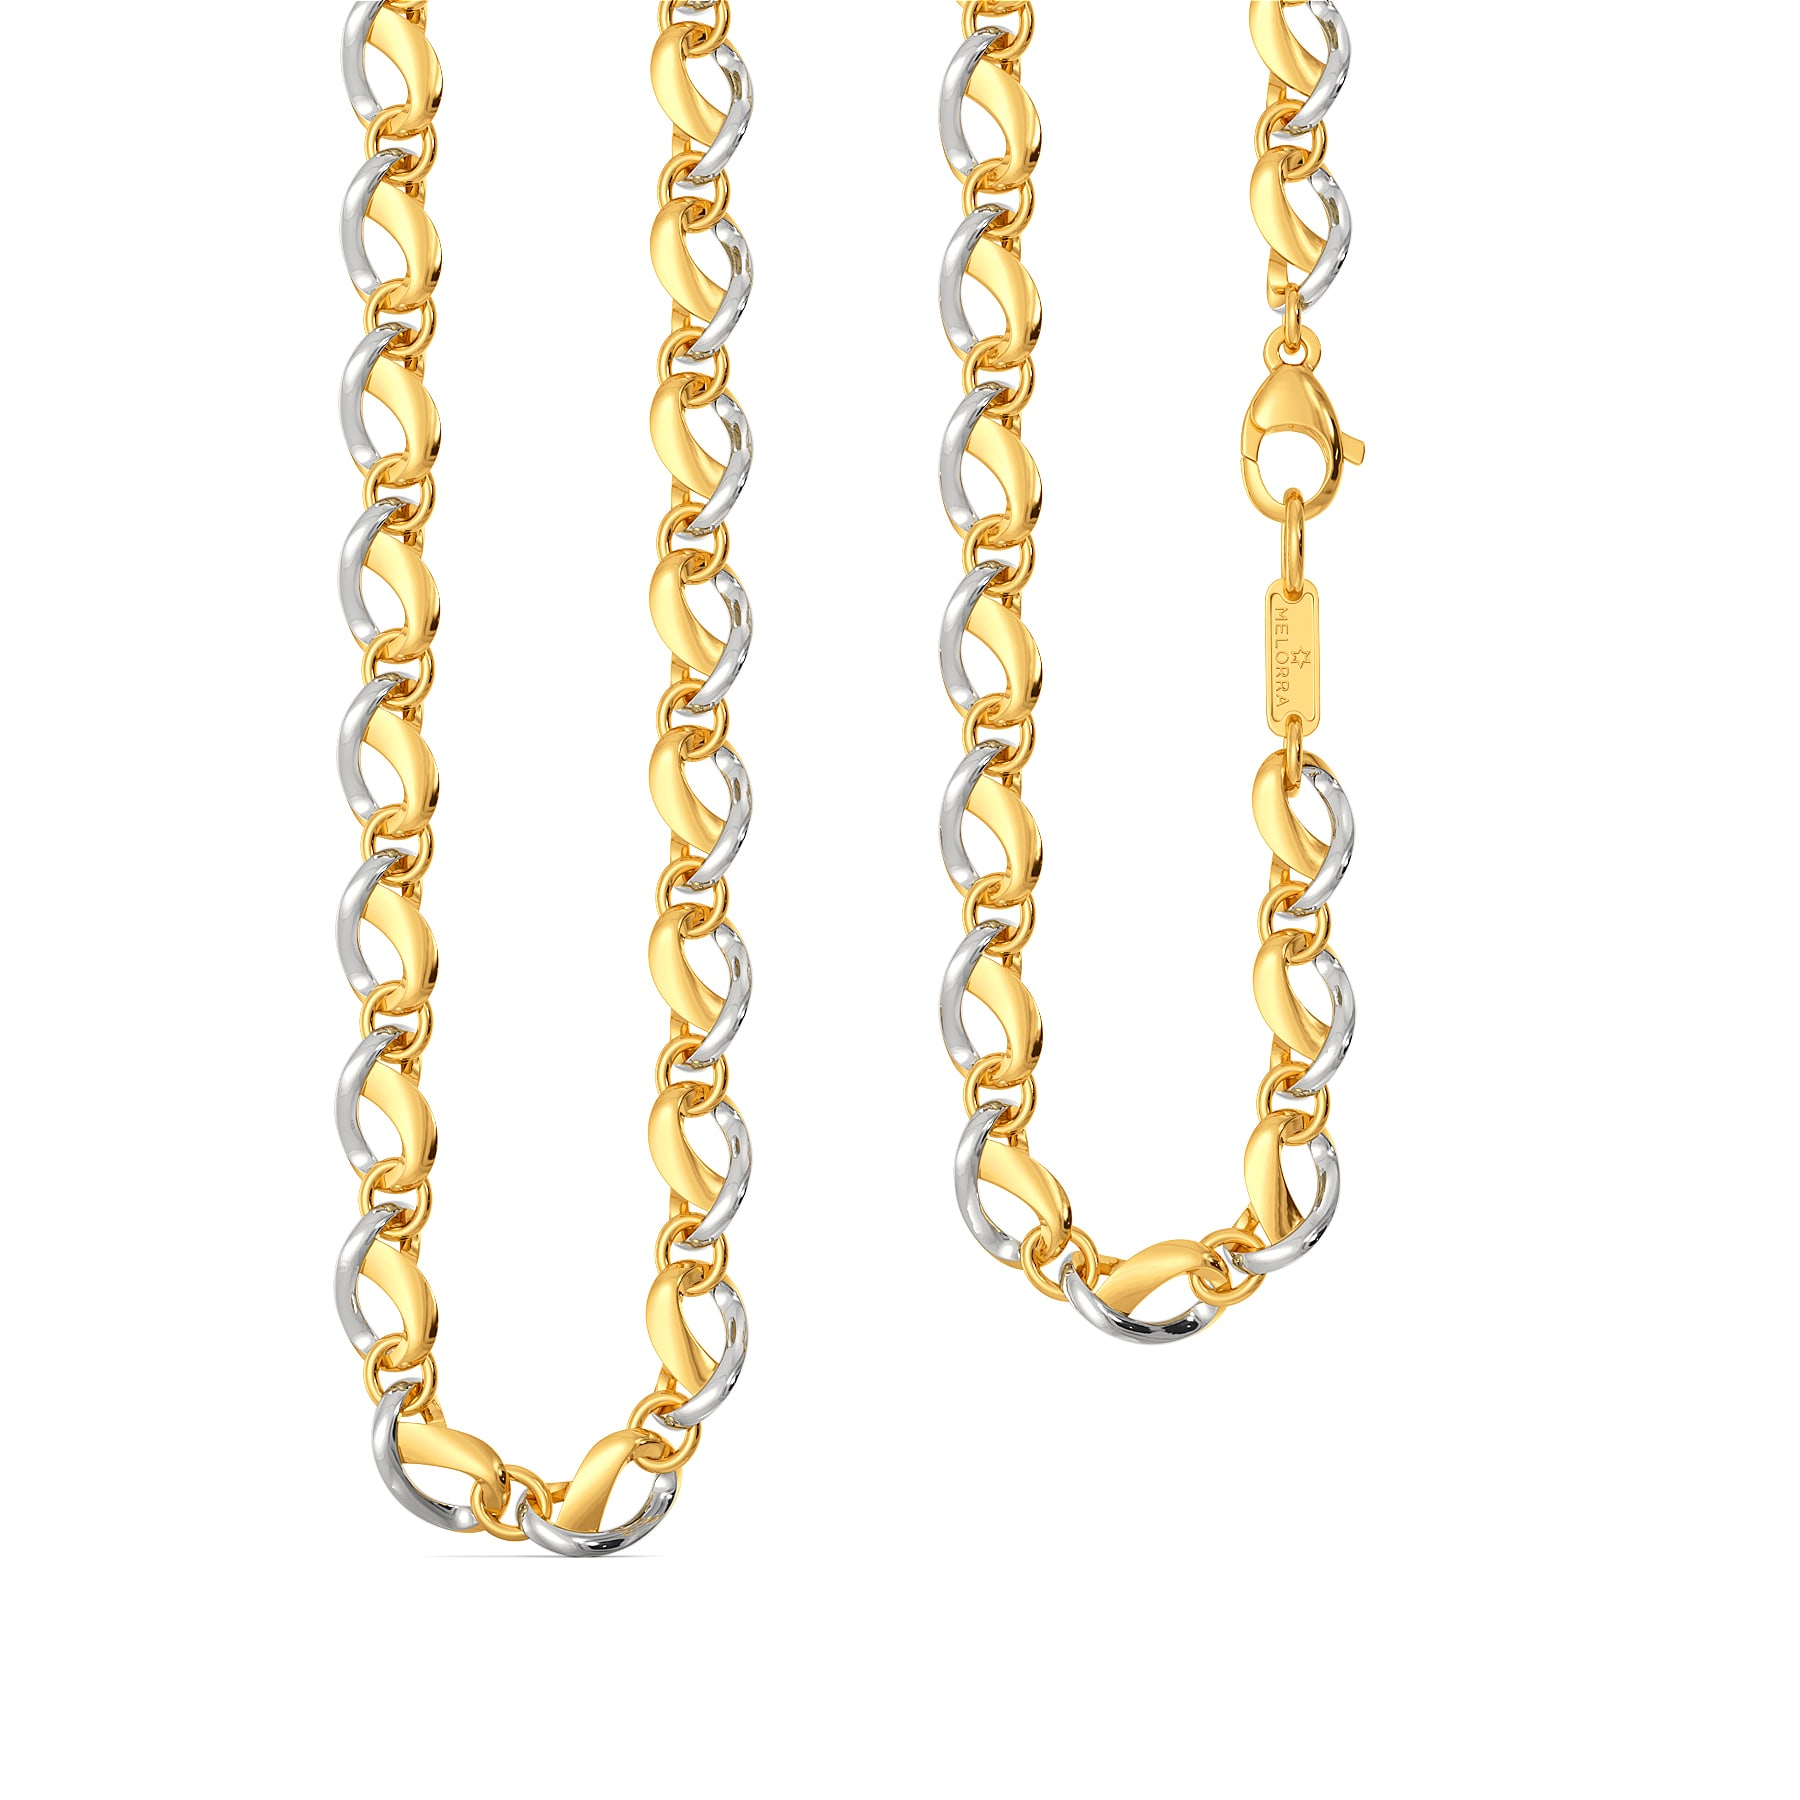 Kink A Wink Gold Chains